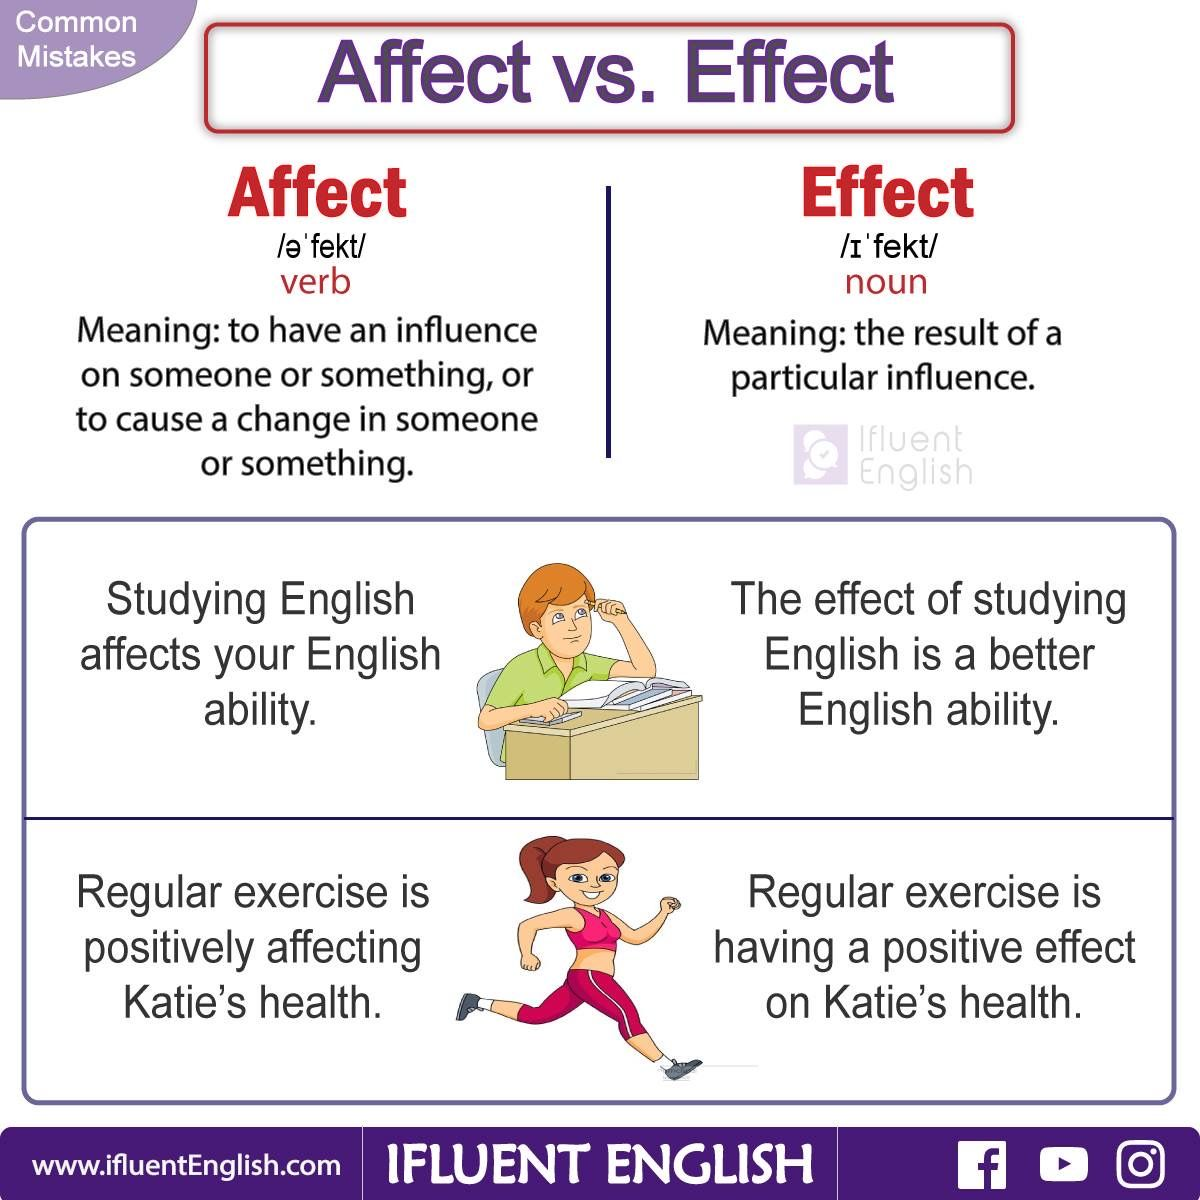 Common Mistakes Affect vs. Effect Grammar and